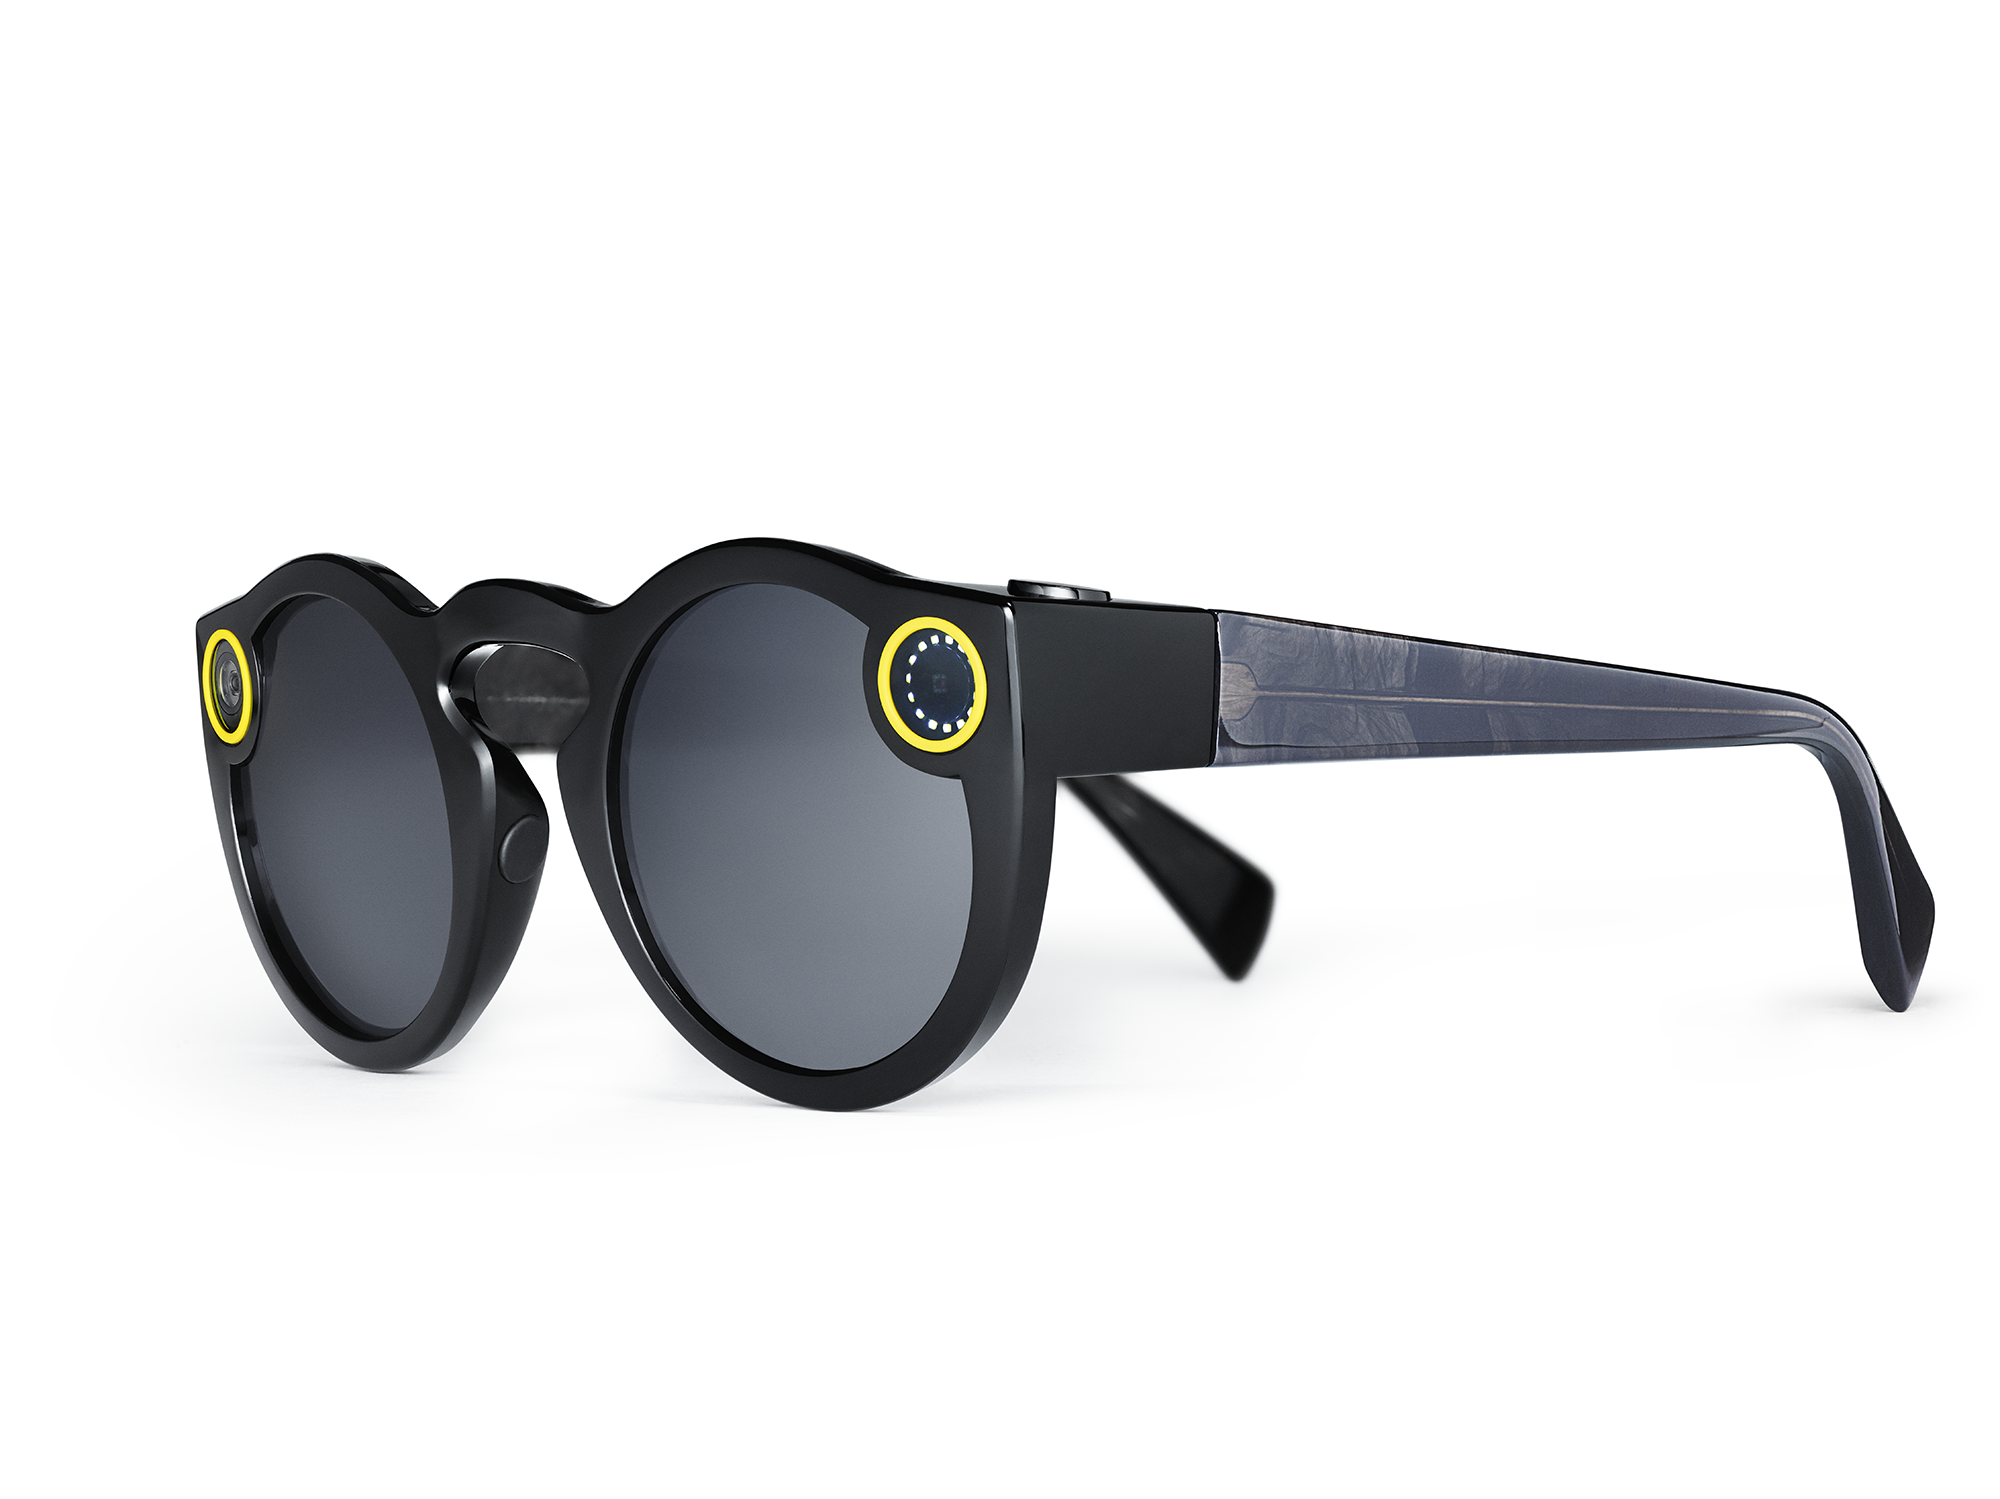 Snapchat Spectacles Now Available To Buy Outside Of The U.S. 2 Black Spectacles